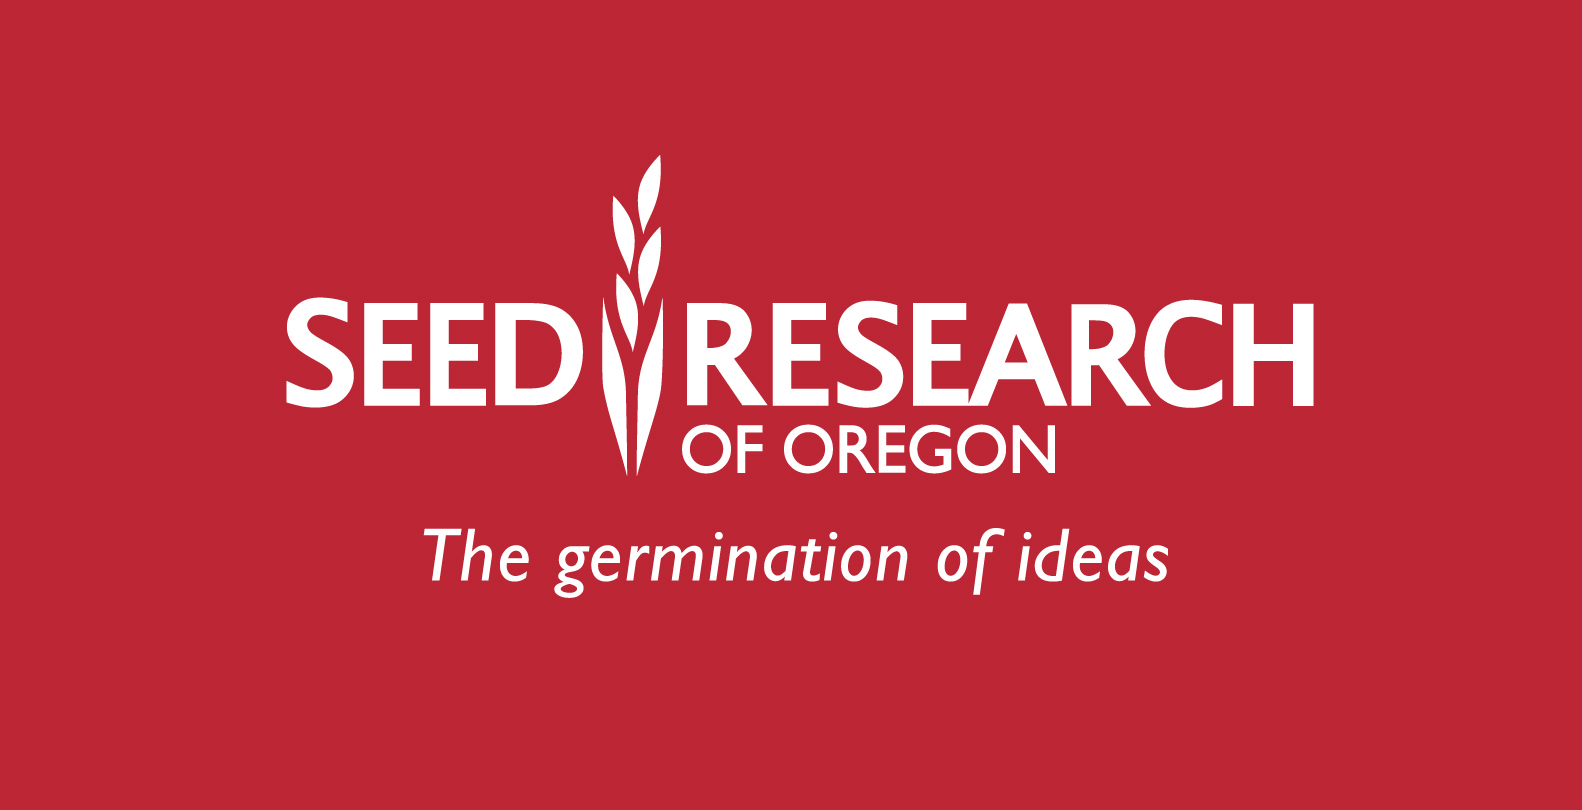 Seed Research of Oregon Link